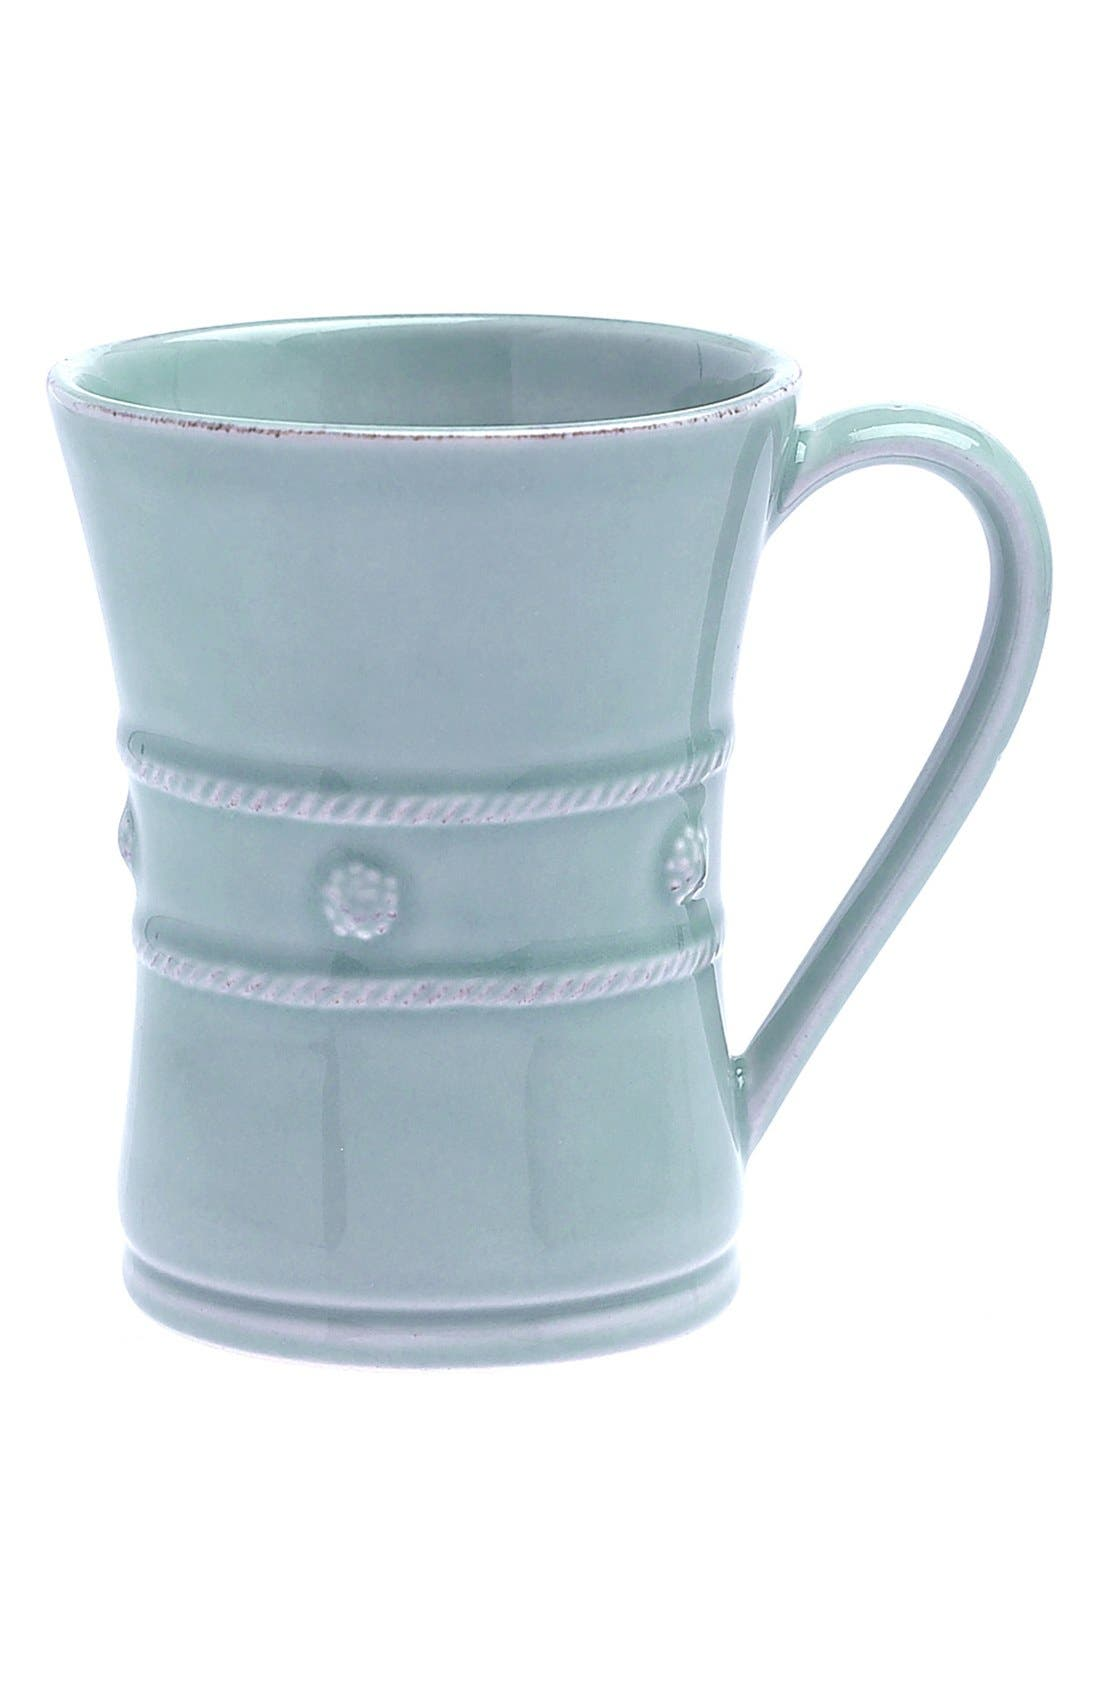 'Berry and Thread' Ceramic Coffee Mug,                             Main thumbnail 1, color,                             ICE BLUE